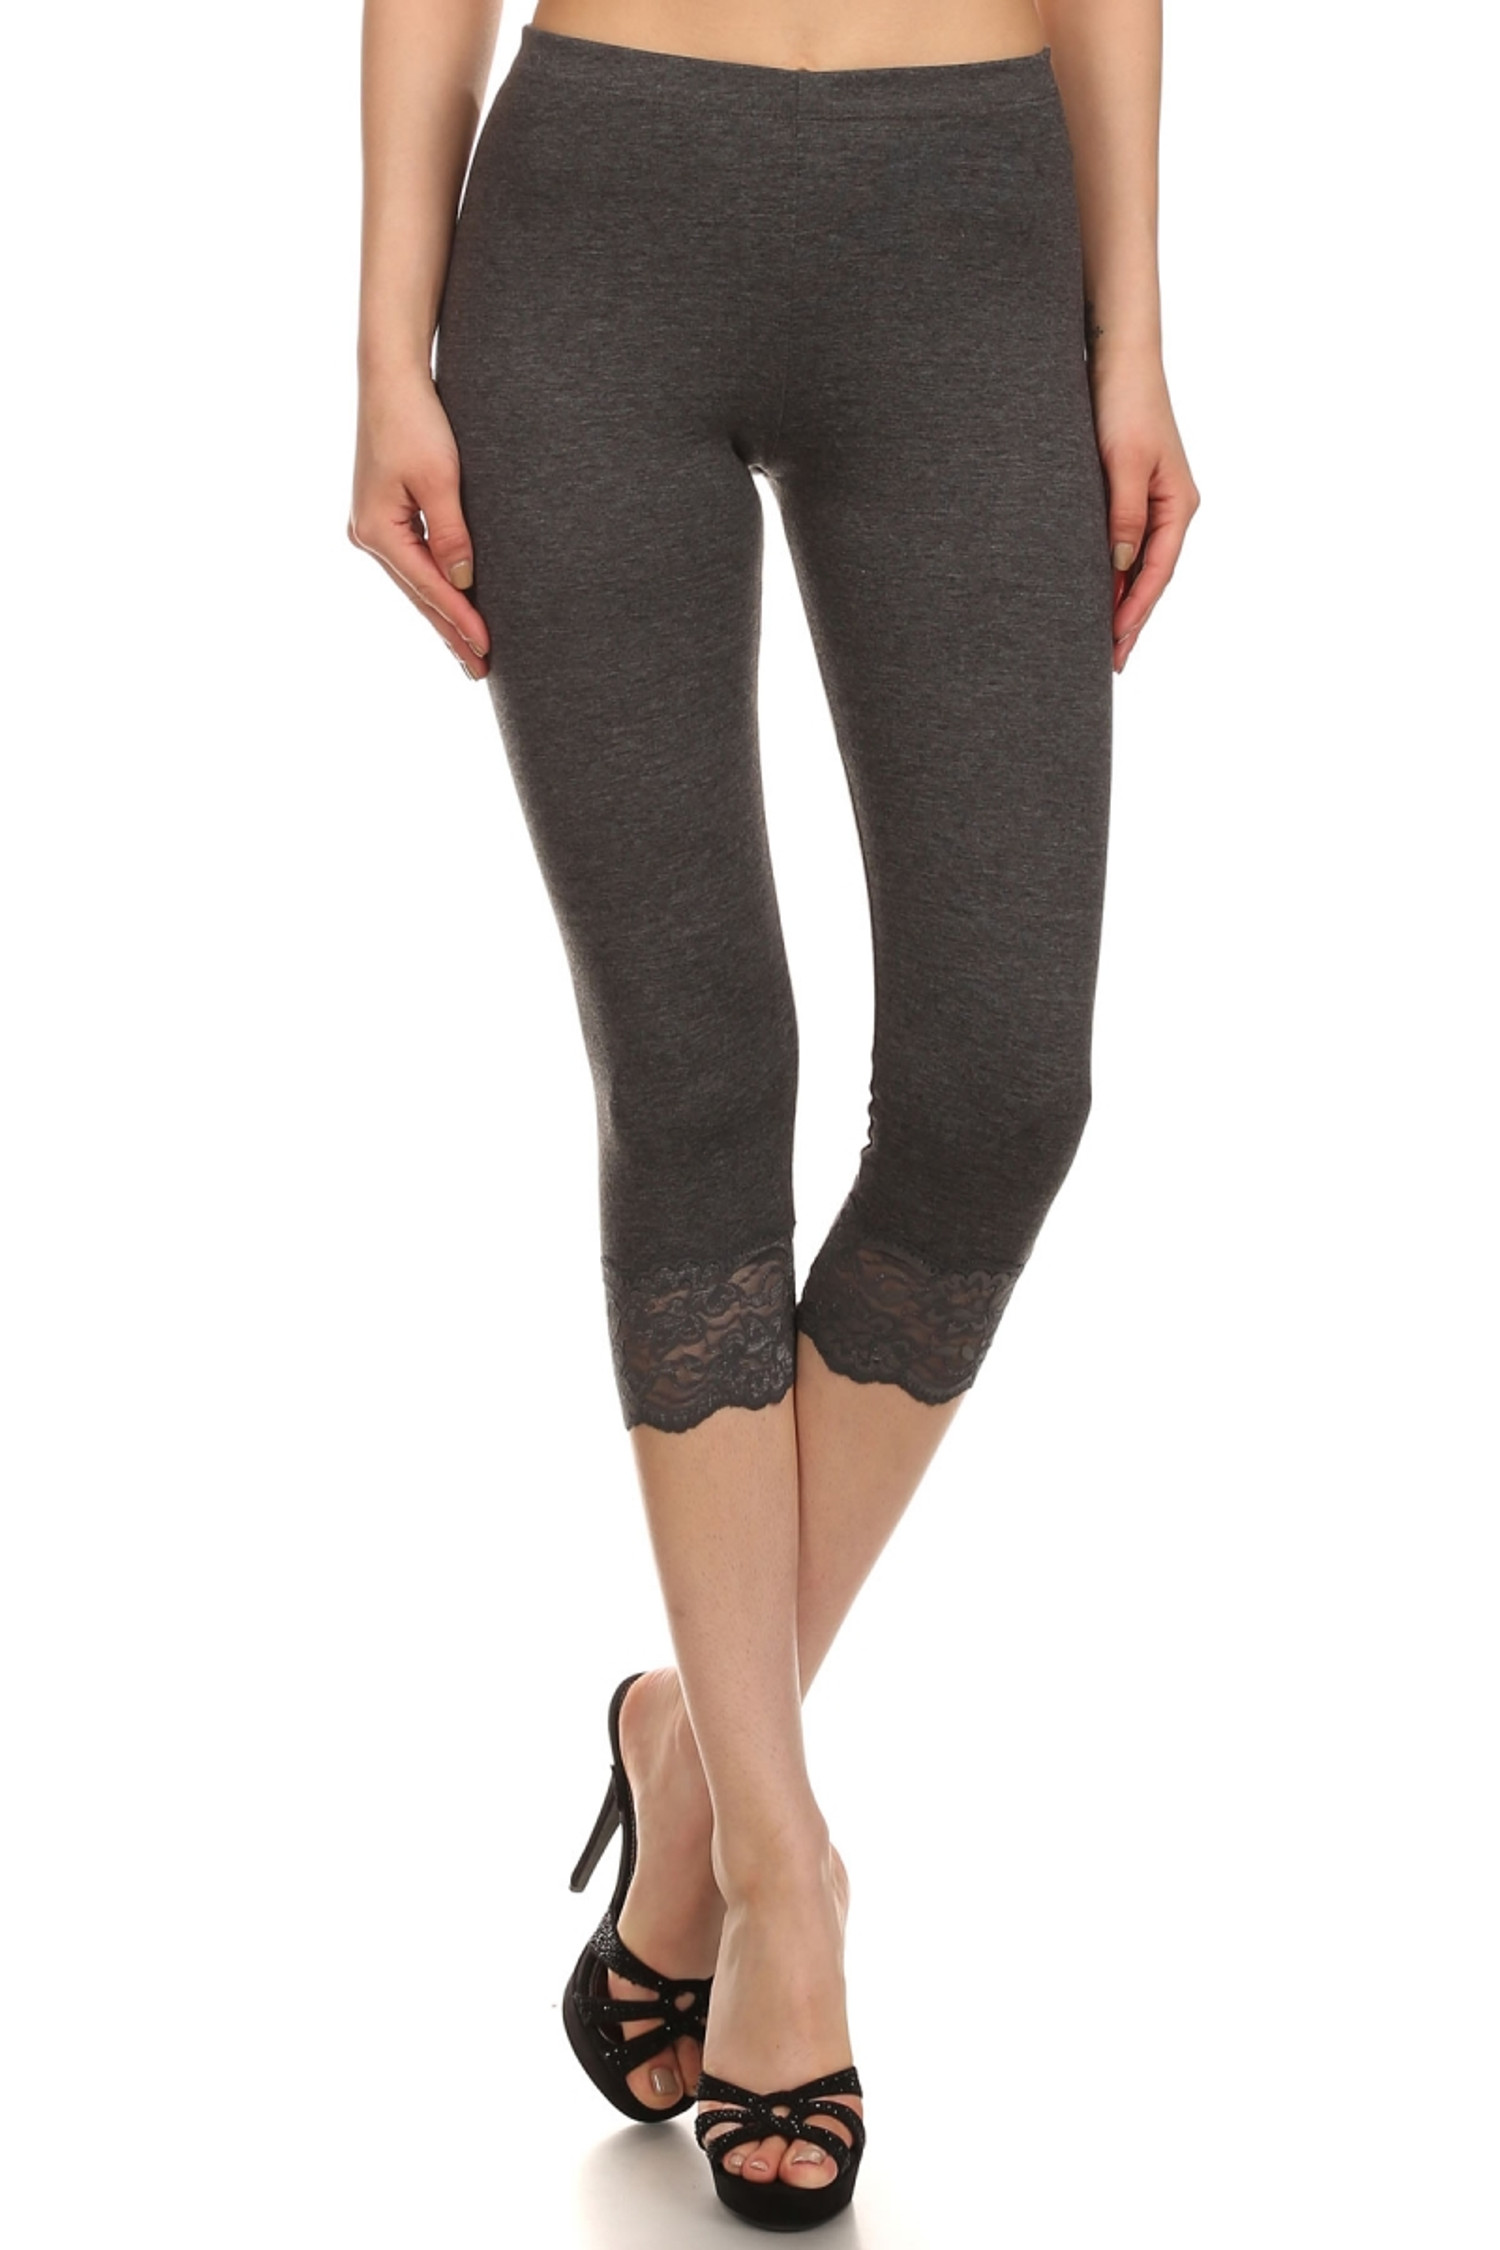 Charcoal USA Cotton Capri Lace Leggings